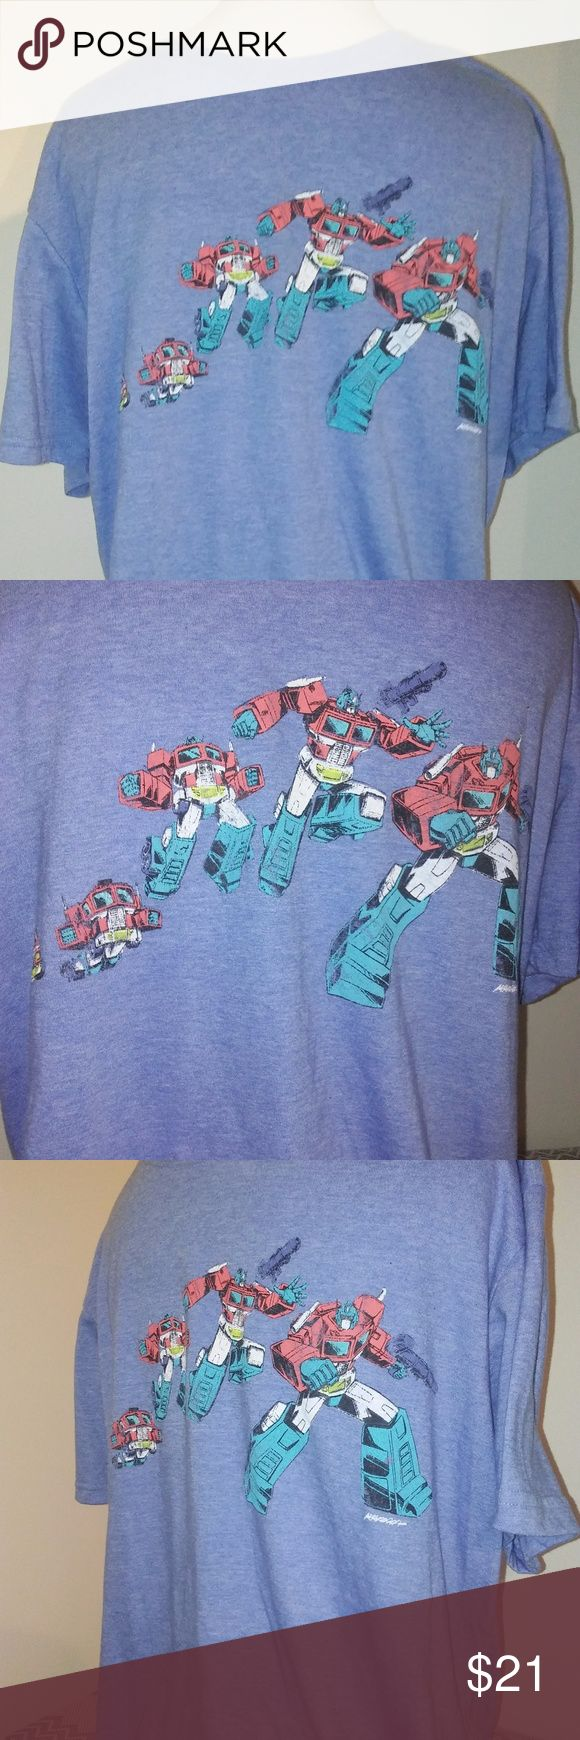 Sweet Transformers Optimus Prime Transformers Lg. NWOT Loot Crate exclusive Transformers Optimus Prime Large vintage style retro short sleeve t-shirt.  Heather light blue shirt shows the one and only Optimus Prime transforming from his 18 wheeler truck into the badass Transformer!  Lightweight   Bundle & Save!! Loot Crate Transformers Exclusive Shirts Tees - Short Sleeve